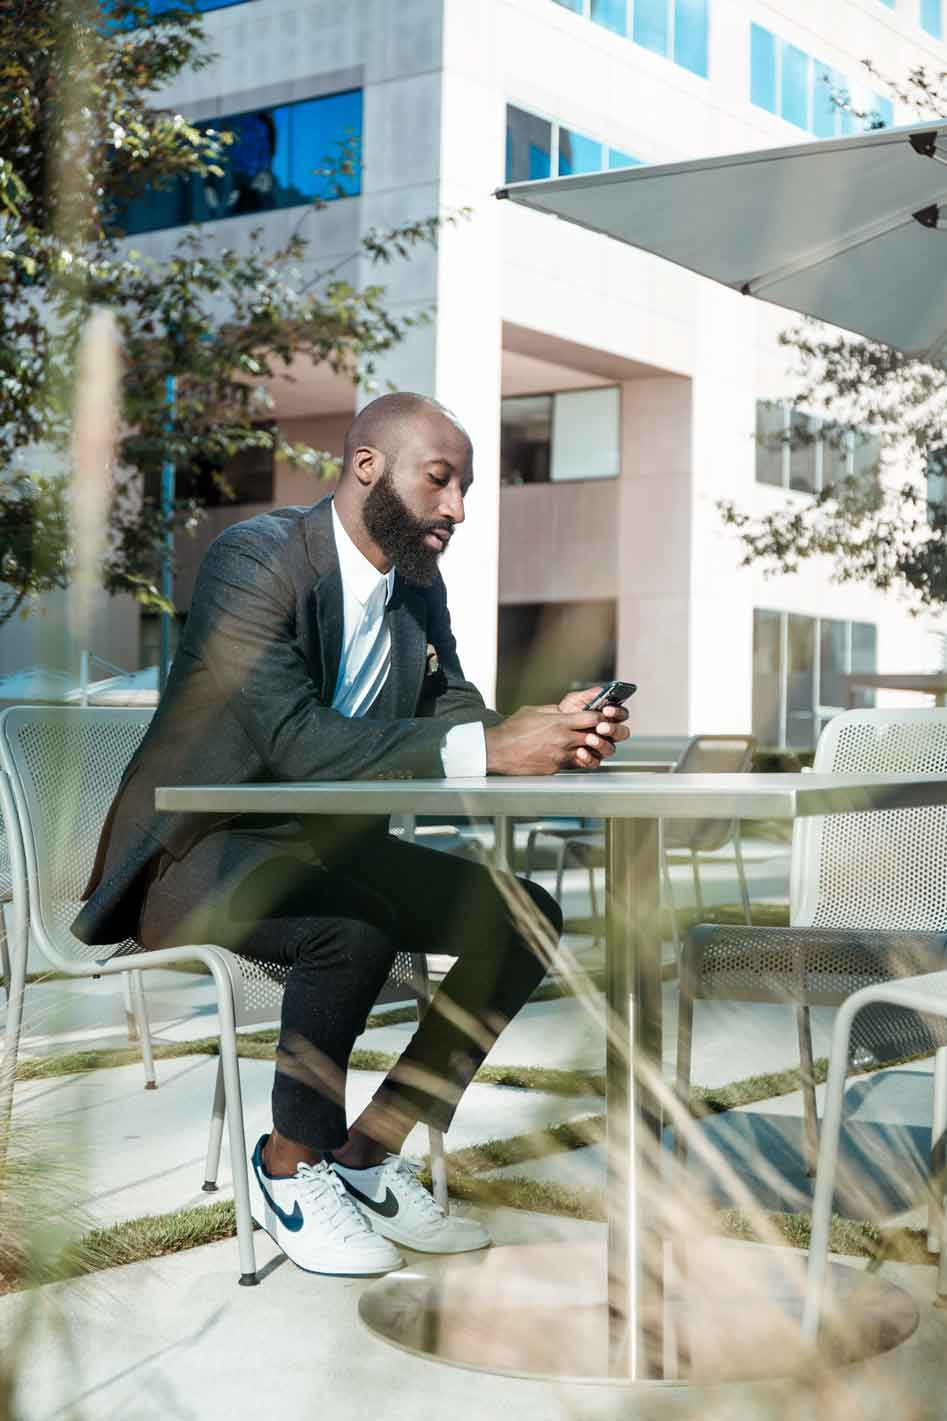 Male in 30s with beard looking at phone outdoors sitting on metal chair at metal table wearing a suit, white trainers and no socks